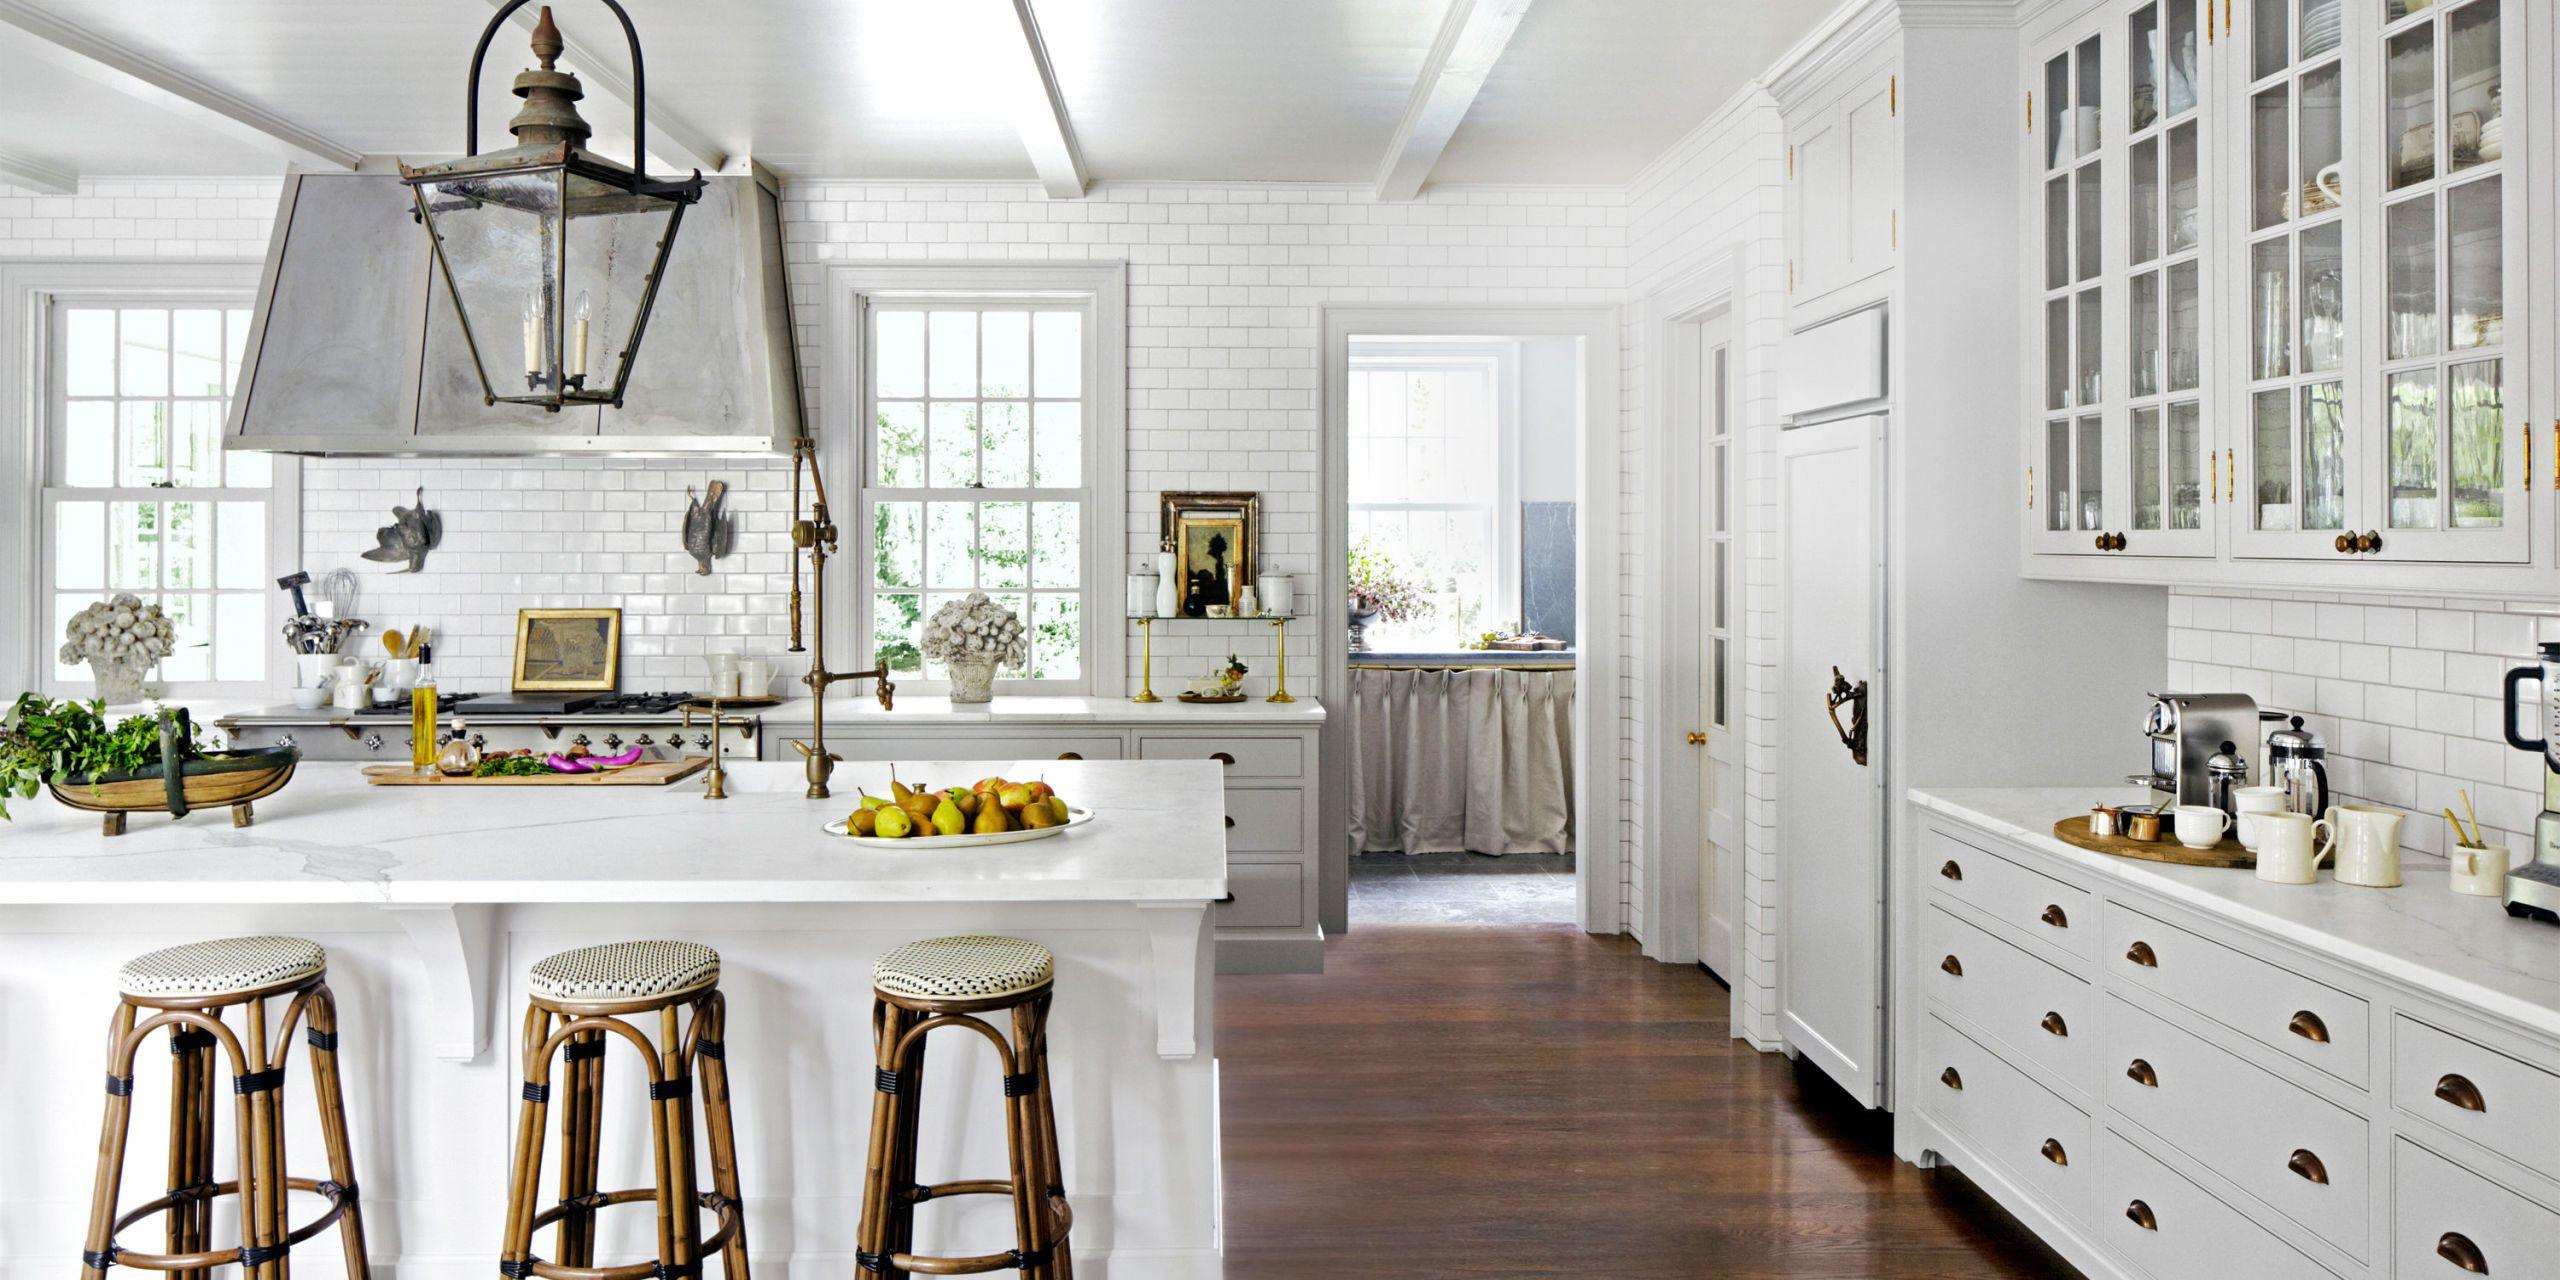 24 Ideas for Decorating a Kitchen With White